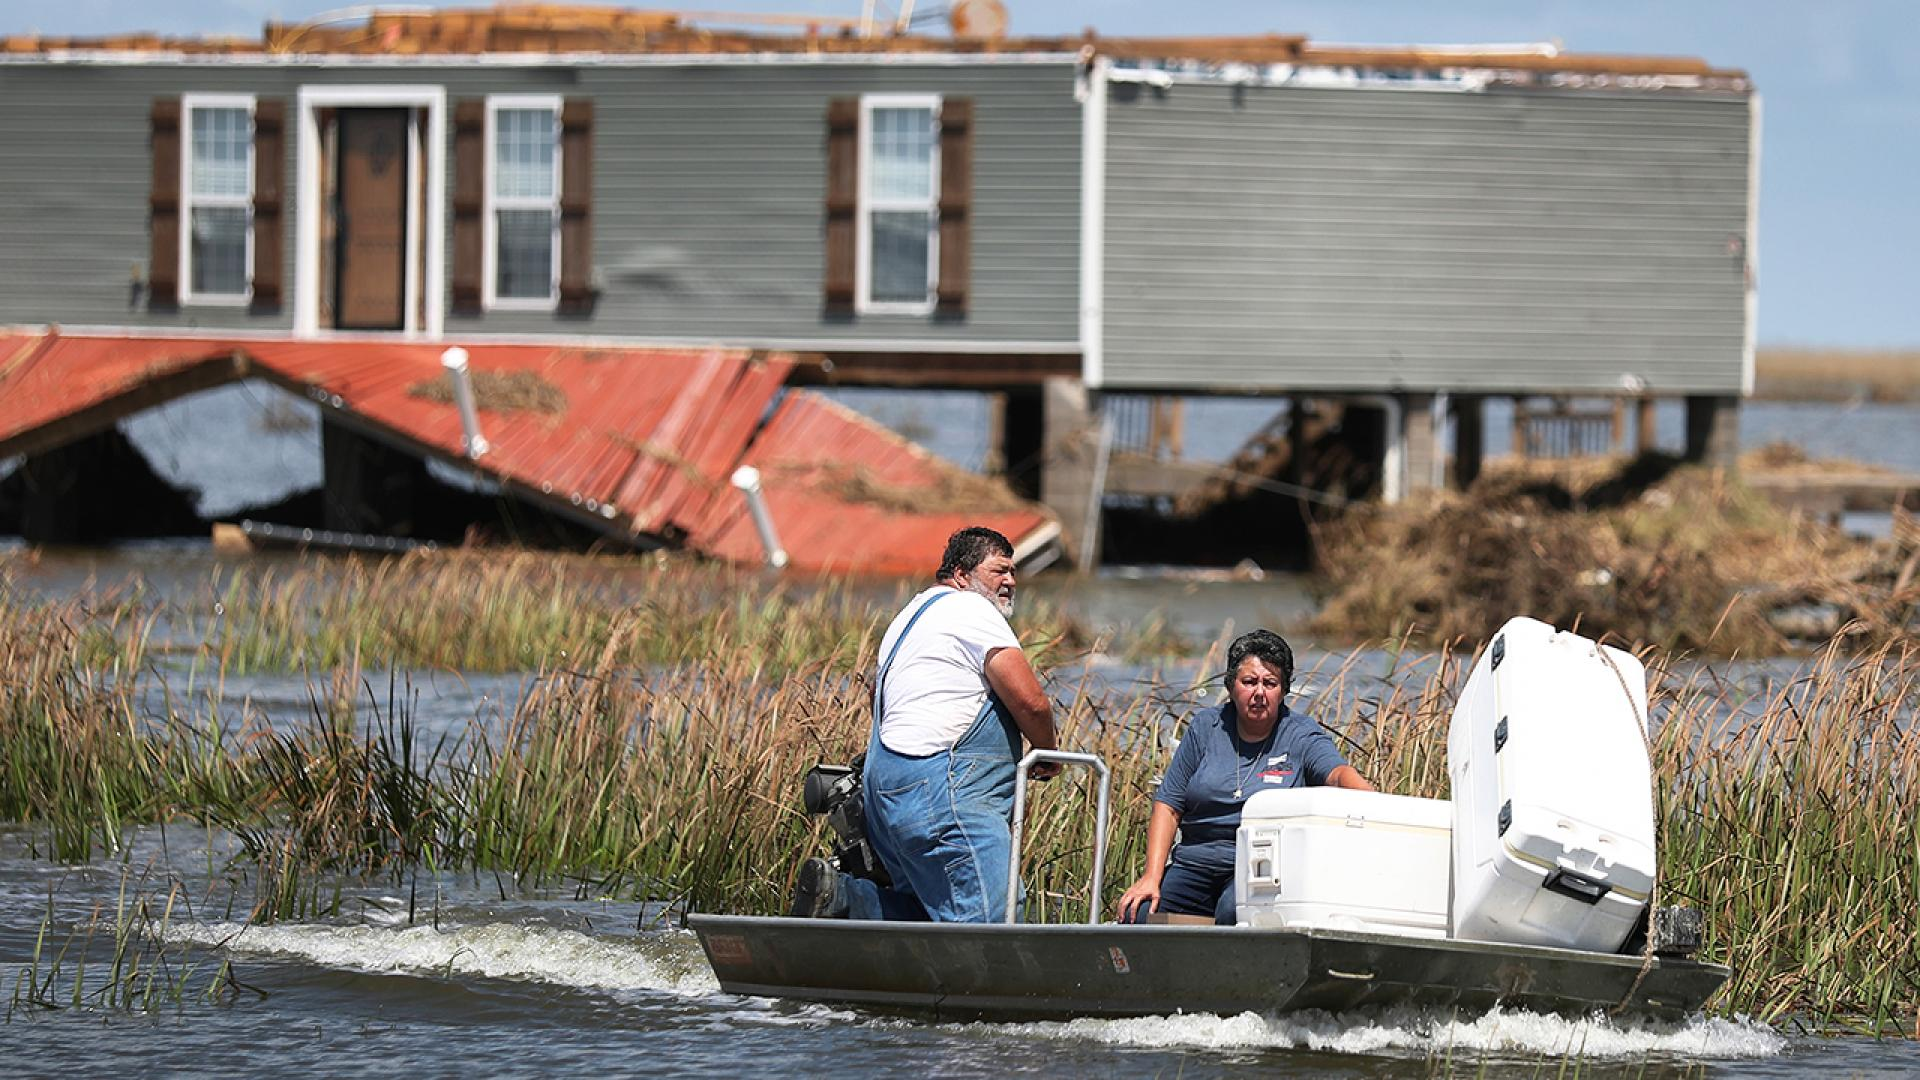 Anthony Vincent and Mary Vincent of Little Chenier who used their boat to rescue food from their freezer after Hurricane Laura hit their home, are just some of the many Louisianians still displaced following last week's storm.